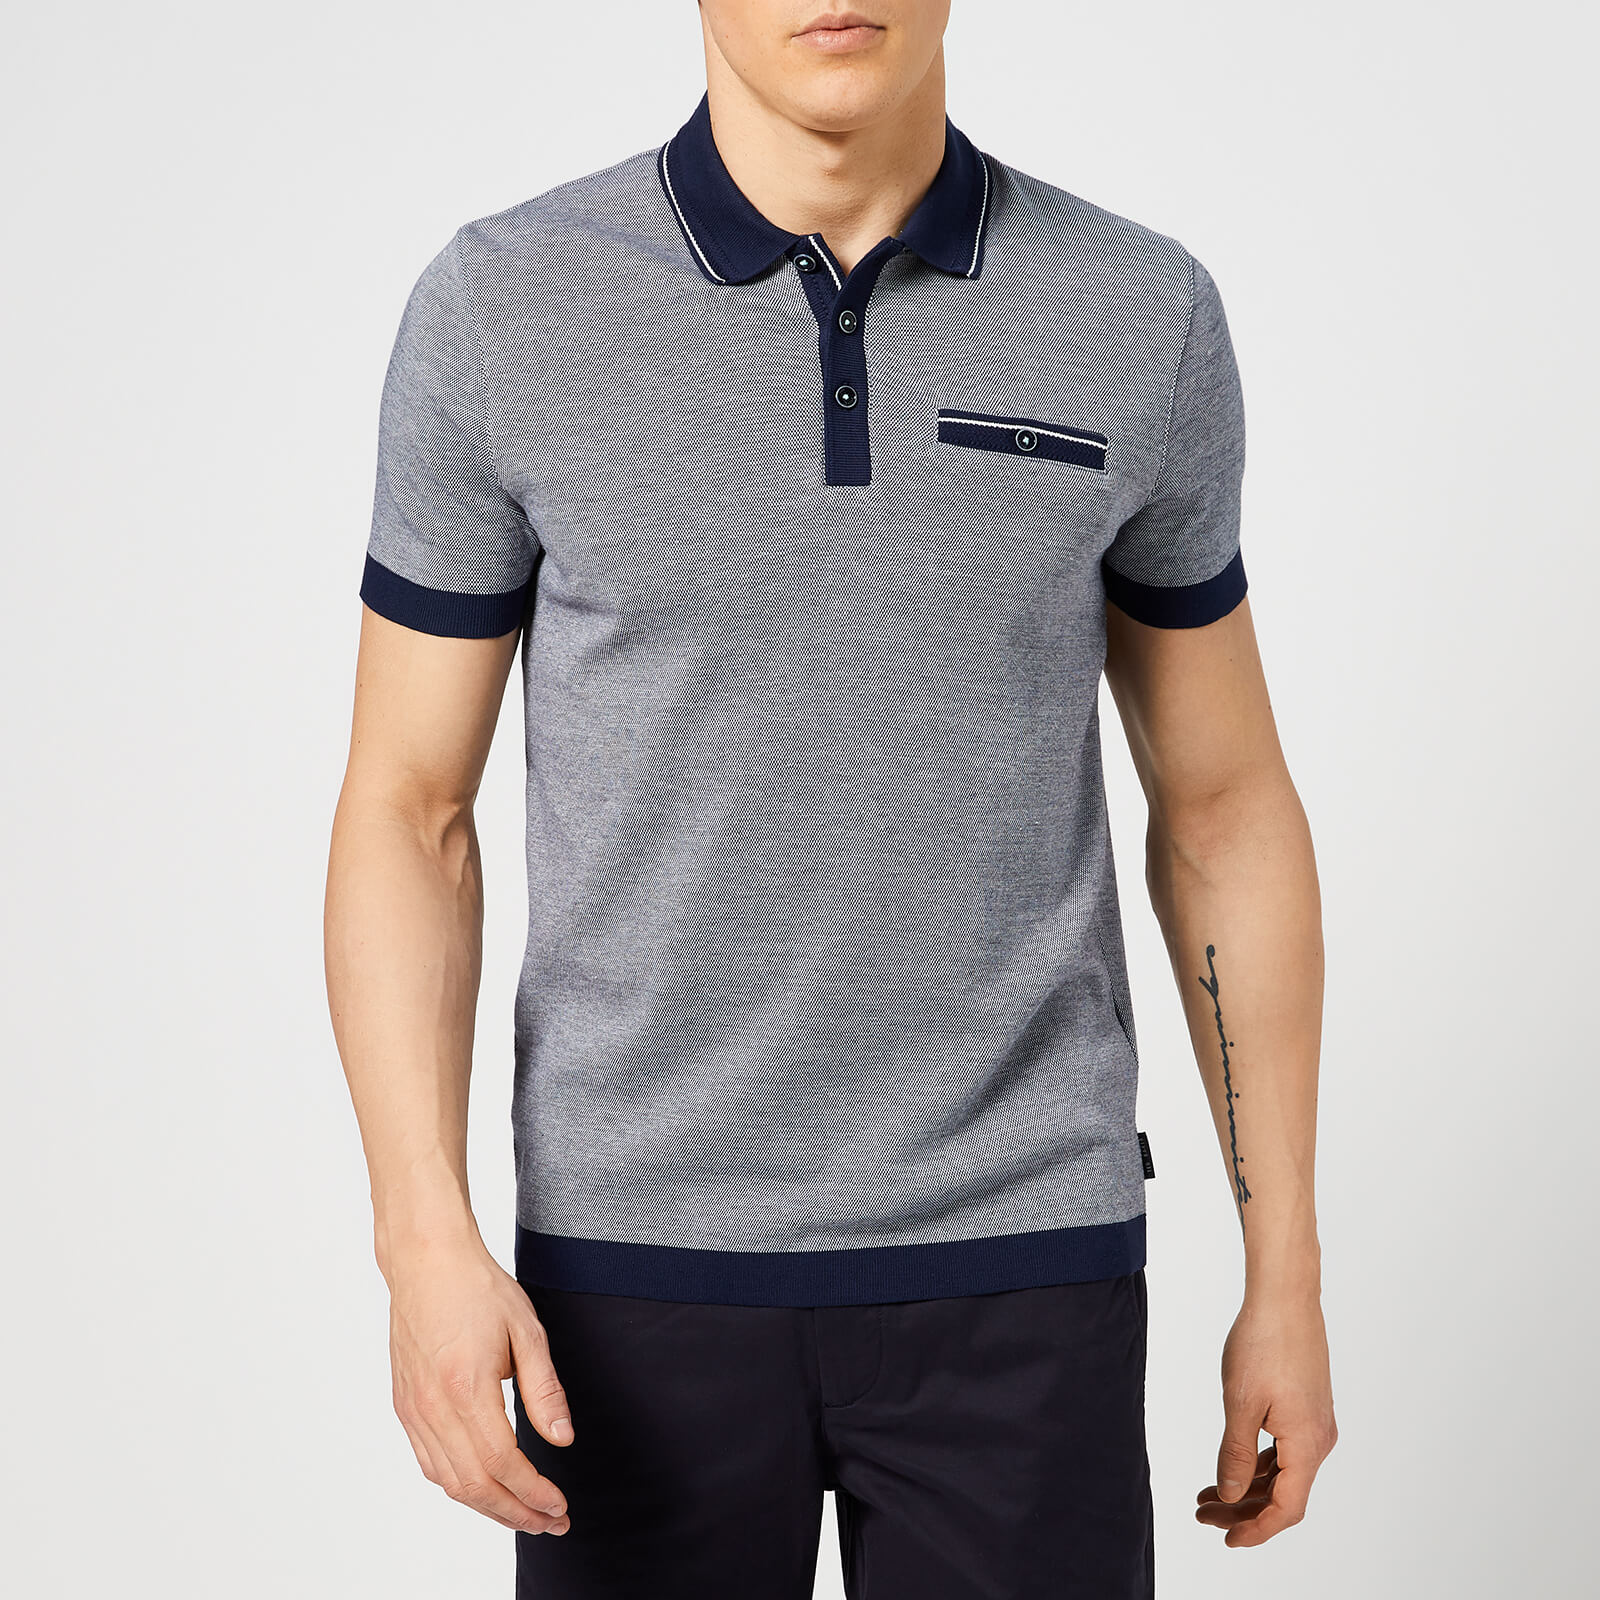 4a4b78515 Ted Baker Men s Troop Polo Shirt - Navy Clothing